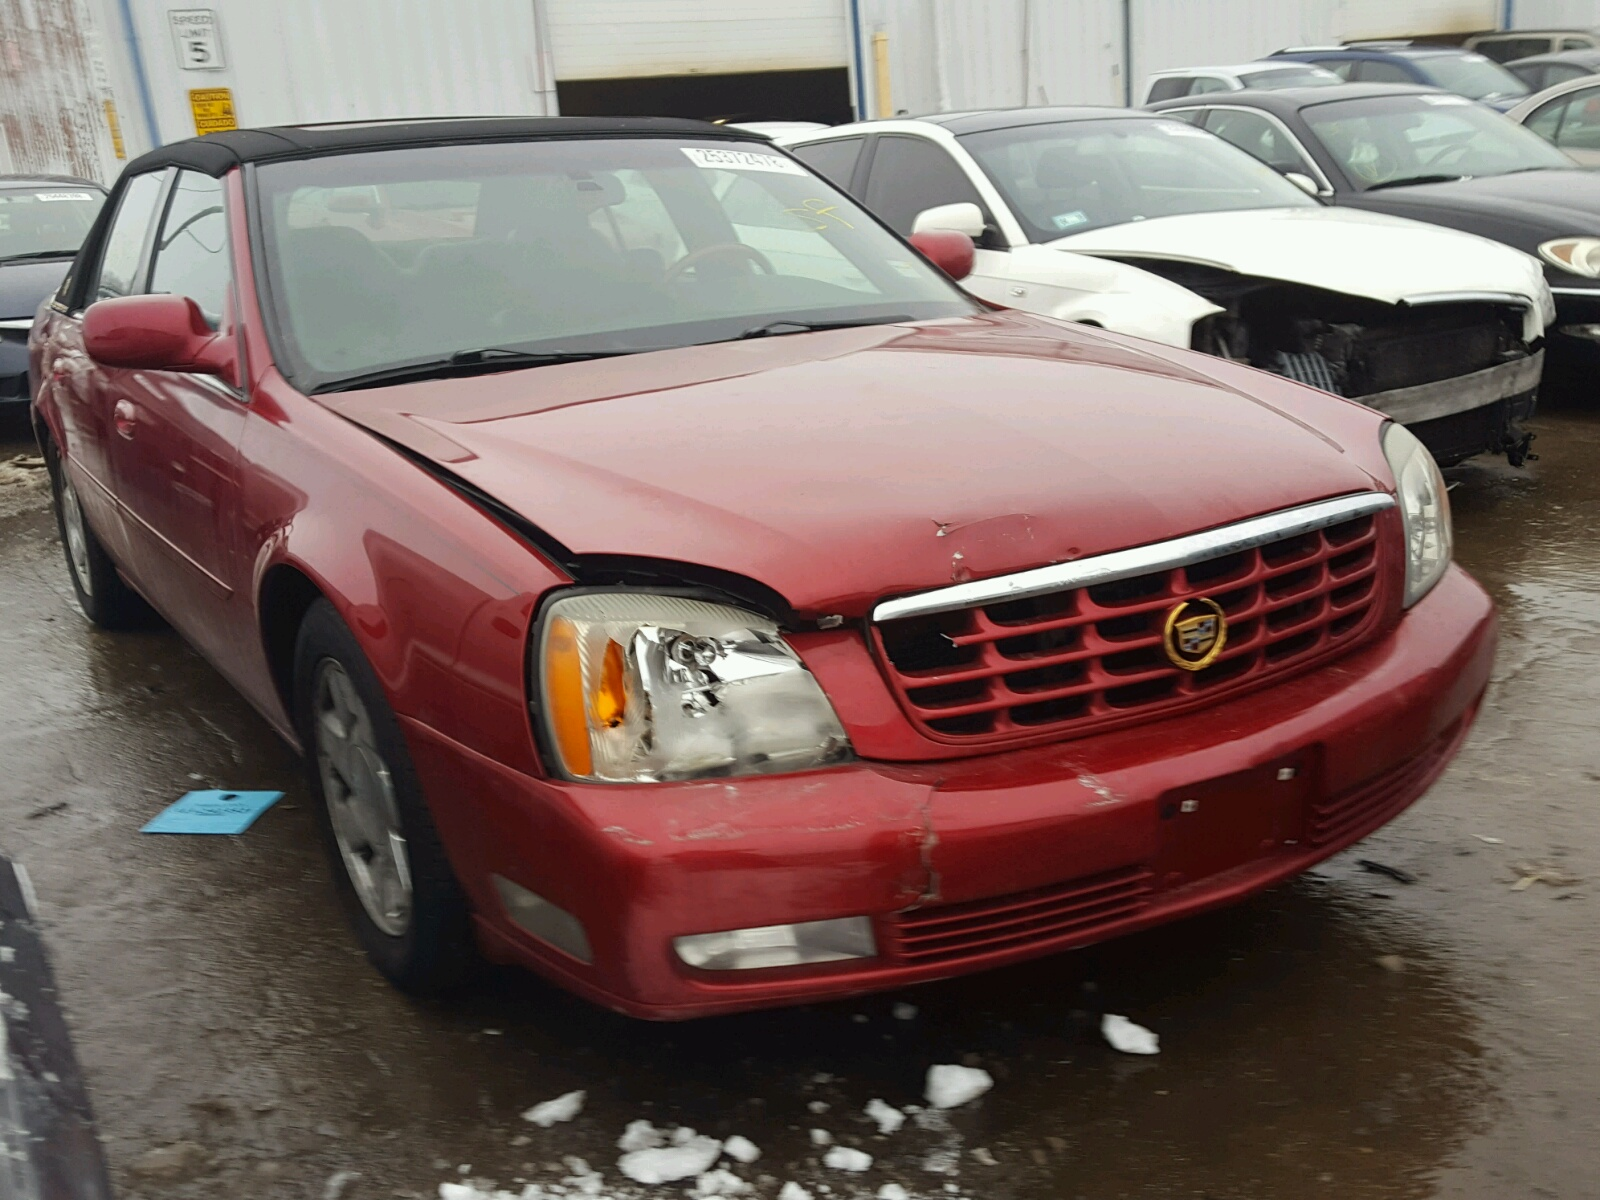 Auto Auction Ended On Vin 5162110208 1951 Cadillac All Other In Dc Coupe Deville For Sale 2002 Dt 46l